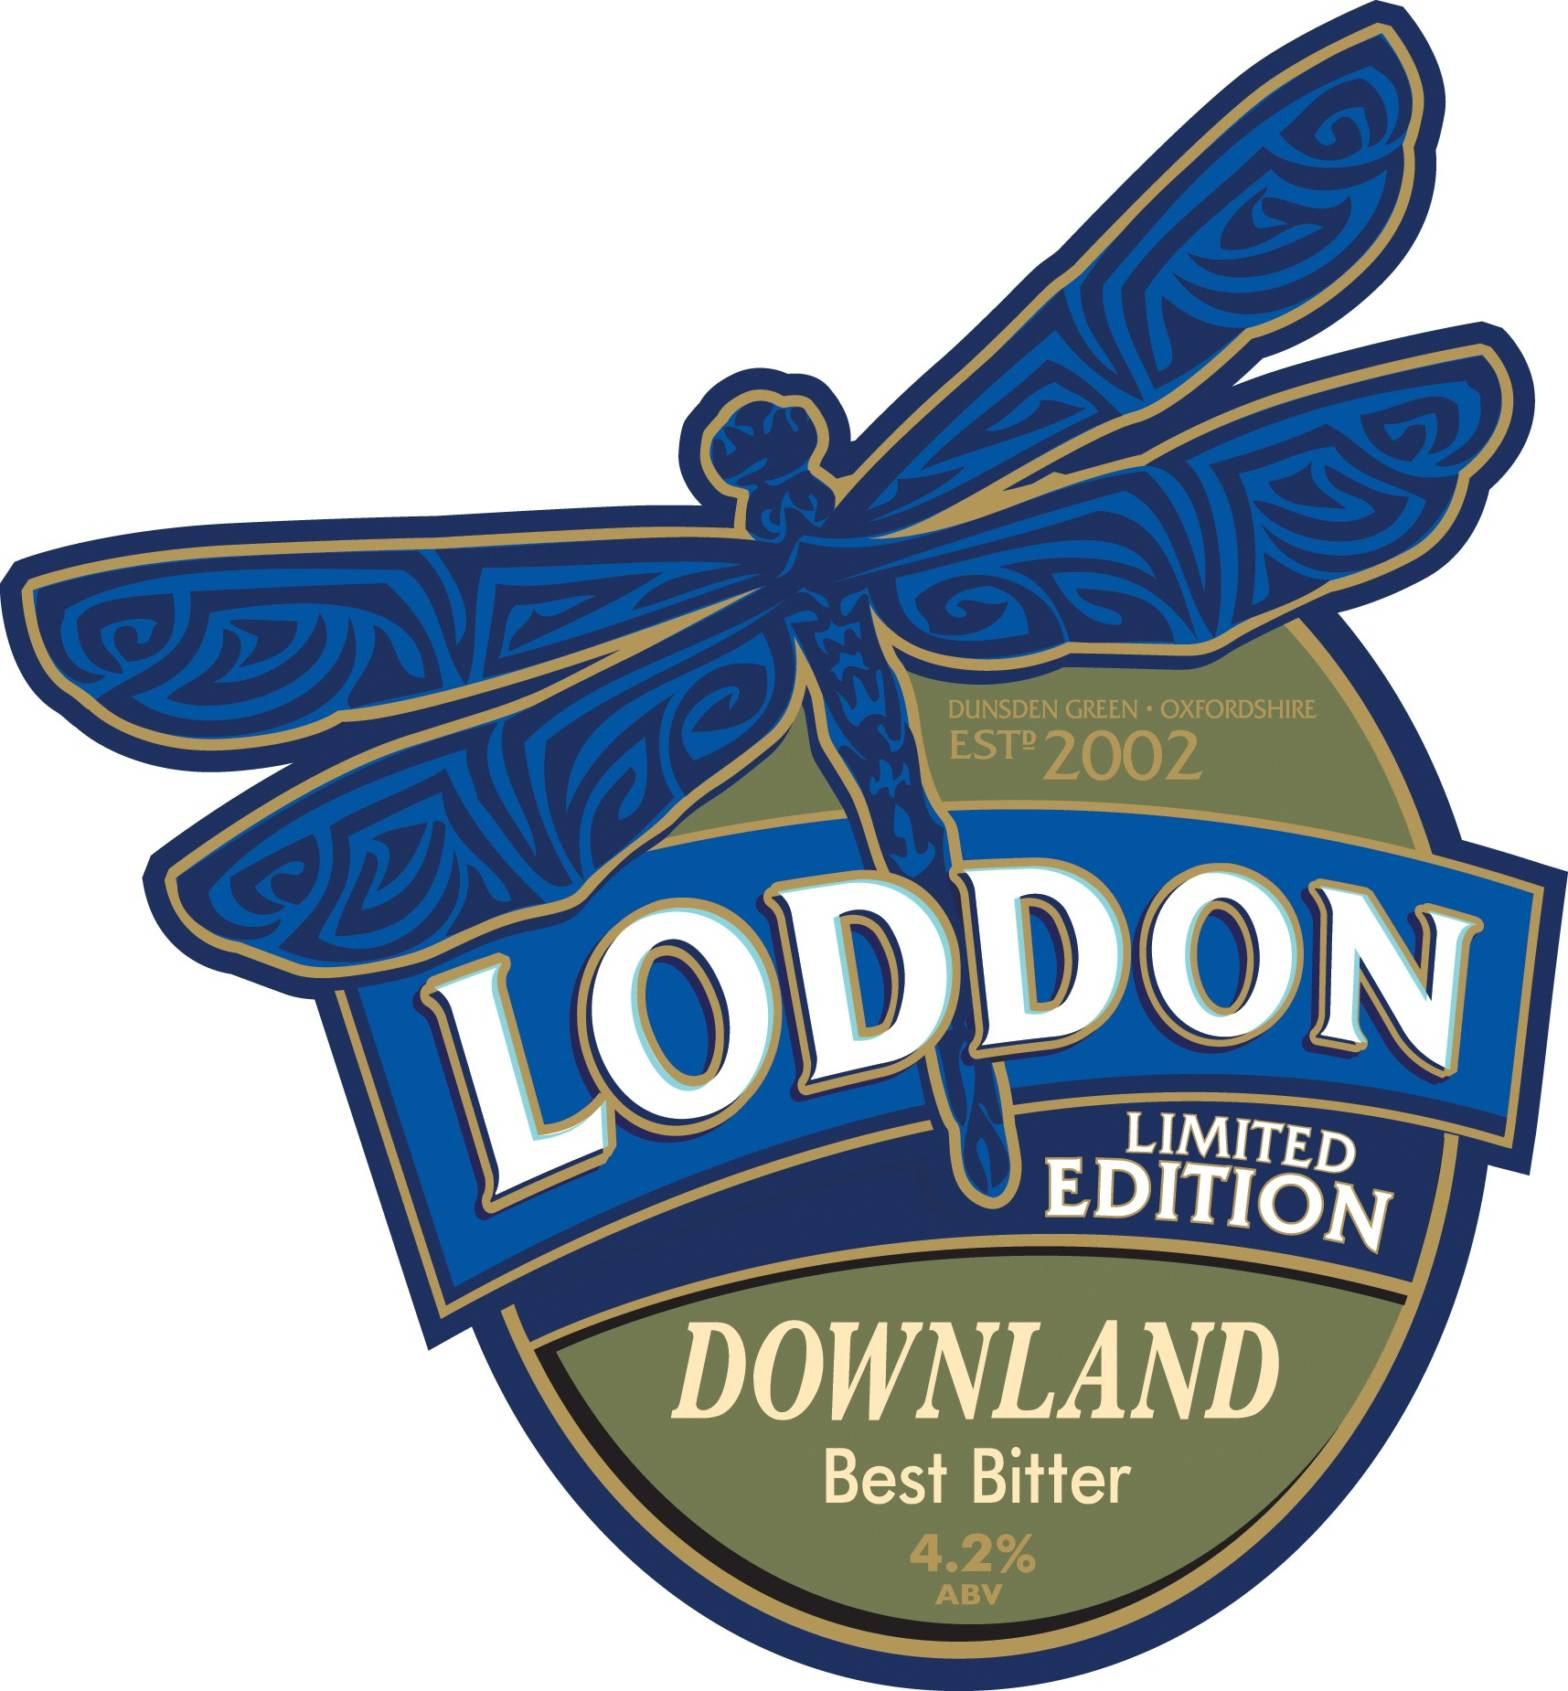 Loddon Brewery Limited Edition - Downland Best Bitter